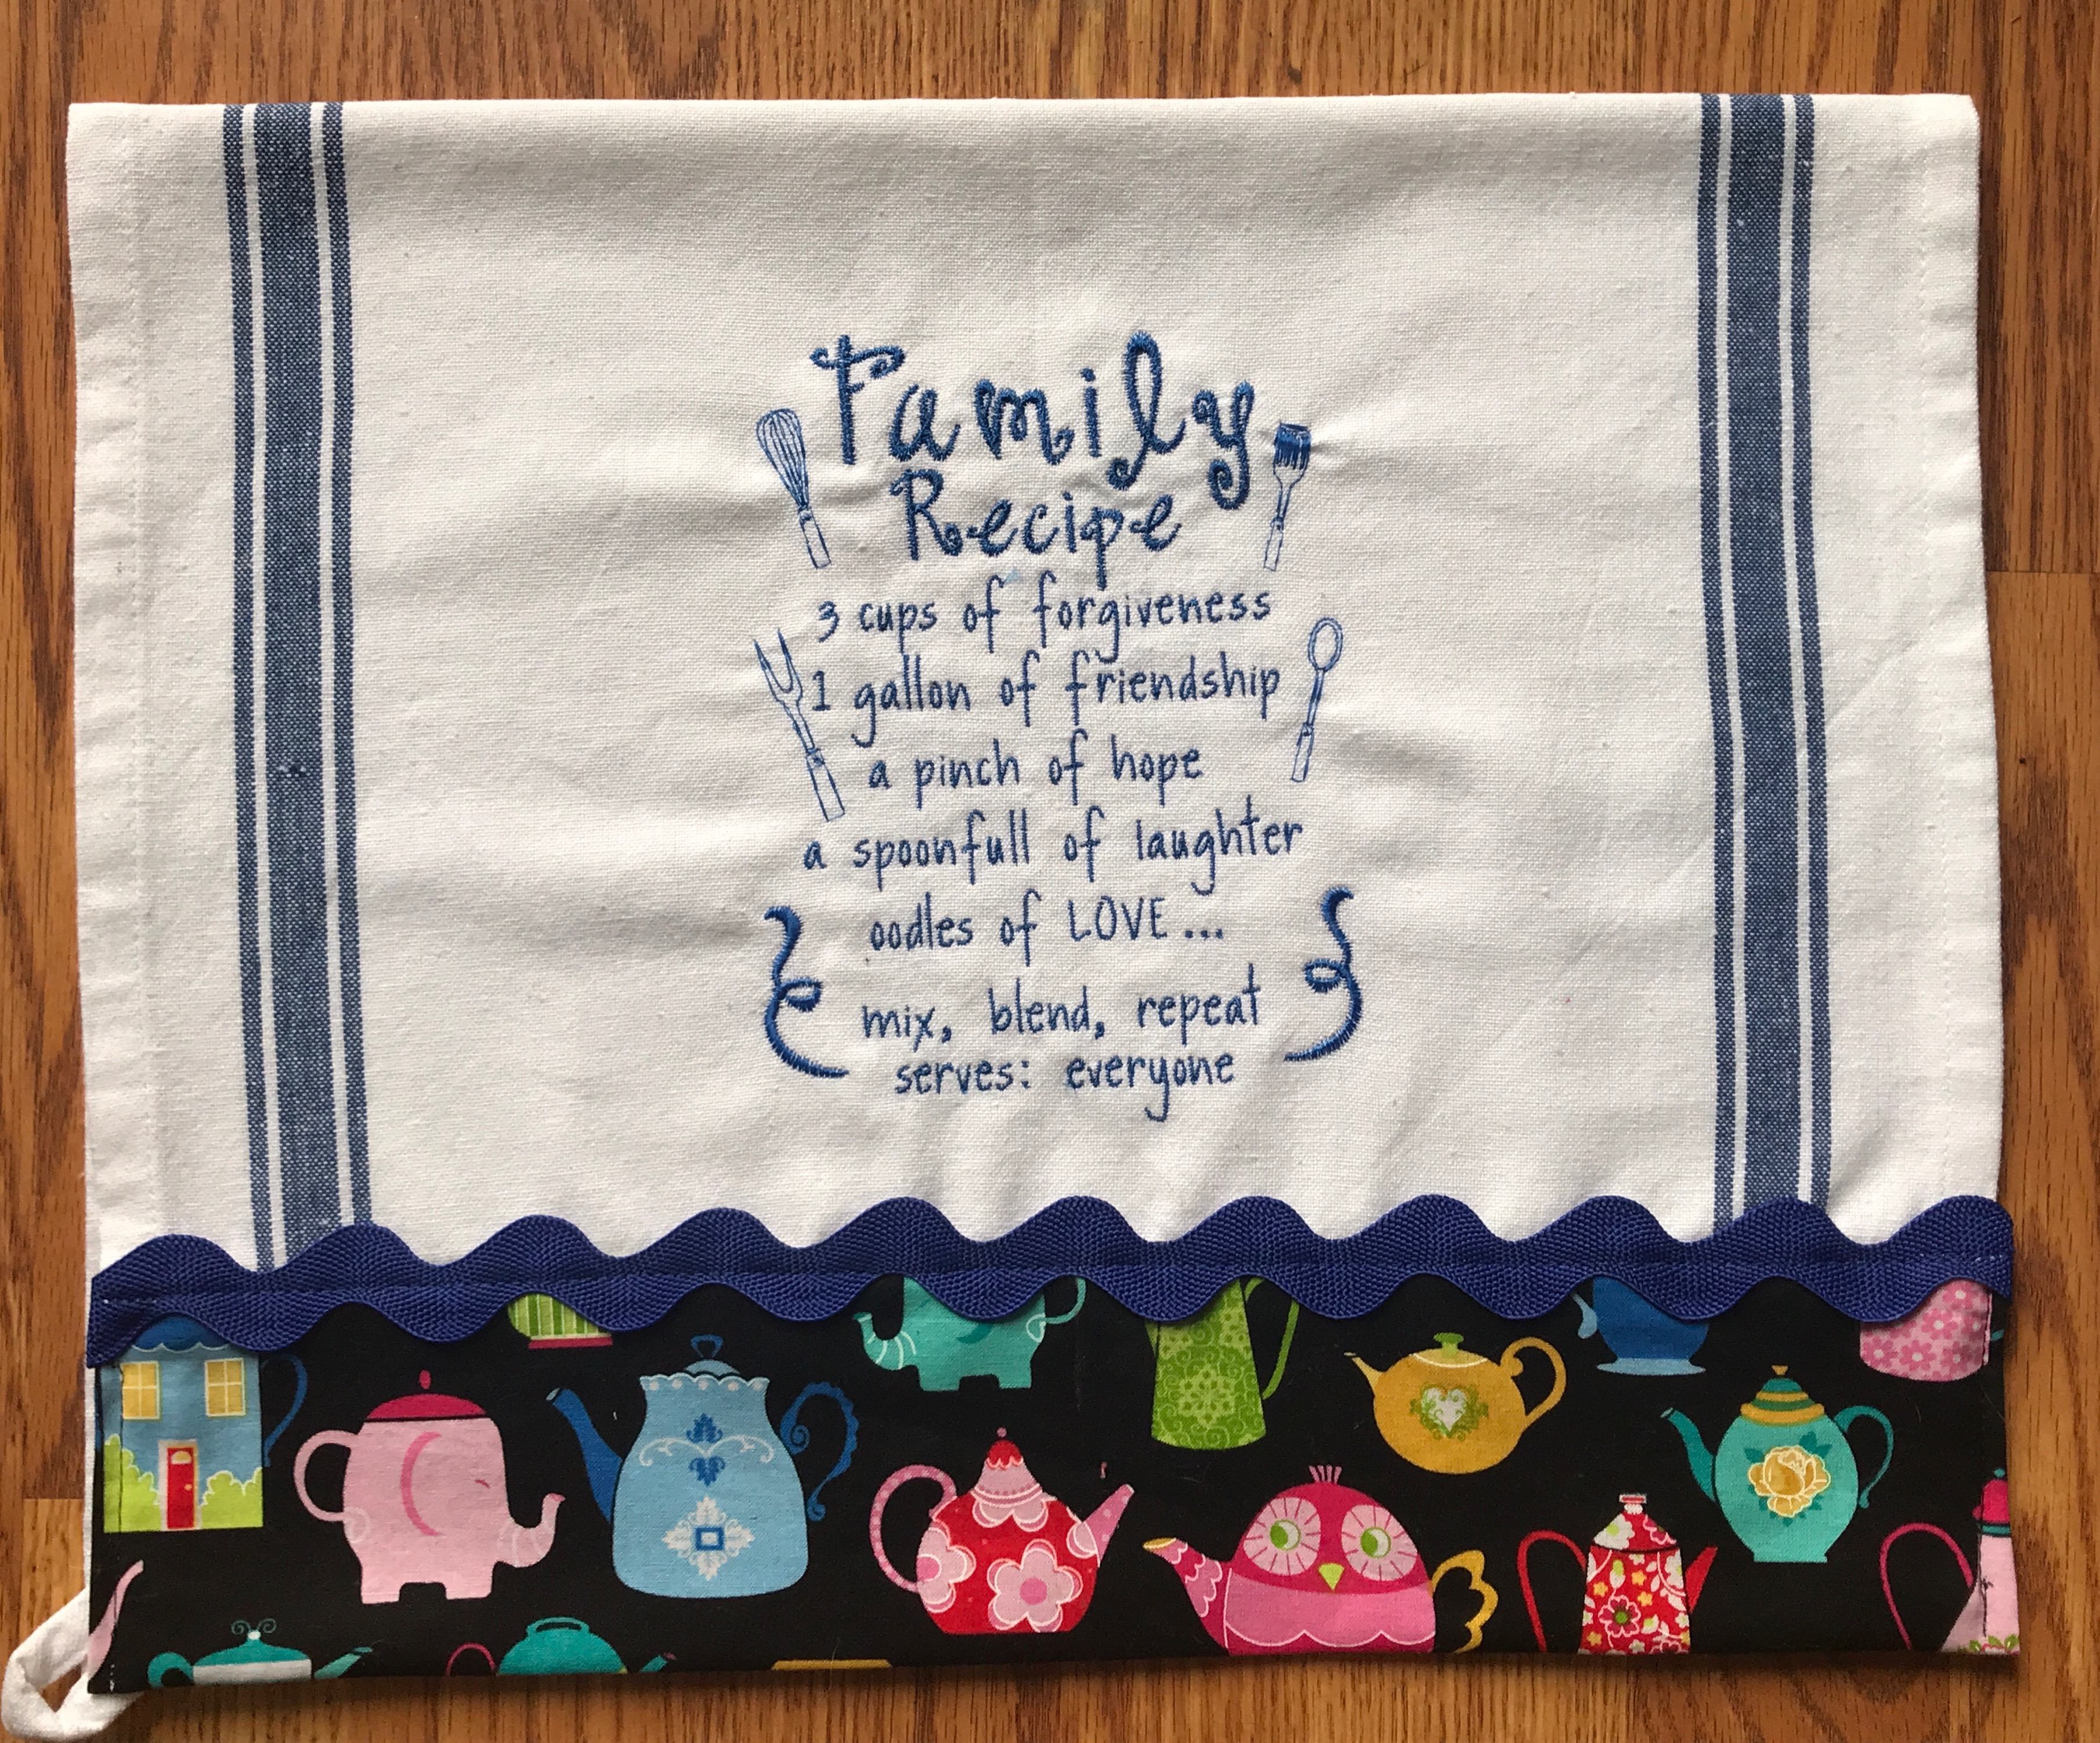 Kitchen Towel Embroidery Patterns Embroidery Lettering Tea Towel Huntington Beach 1 Session Moores Sewing